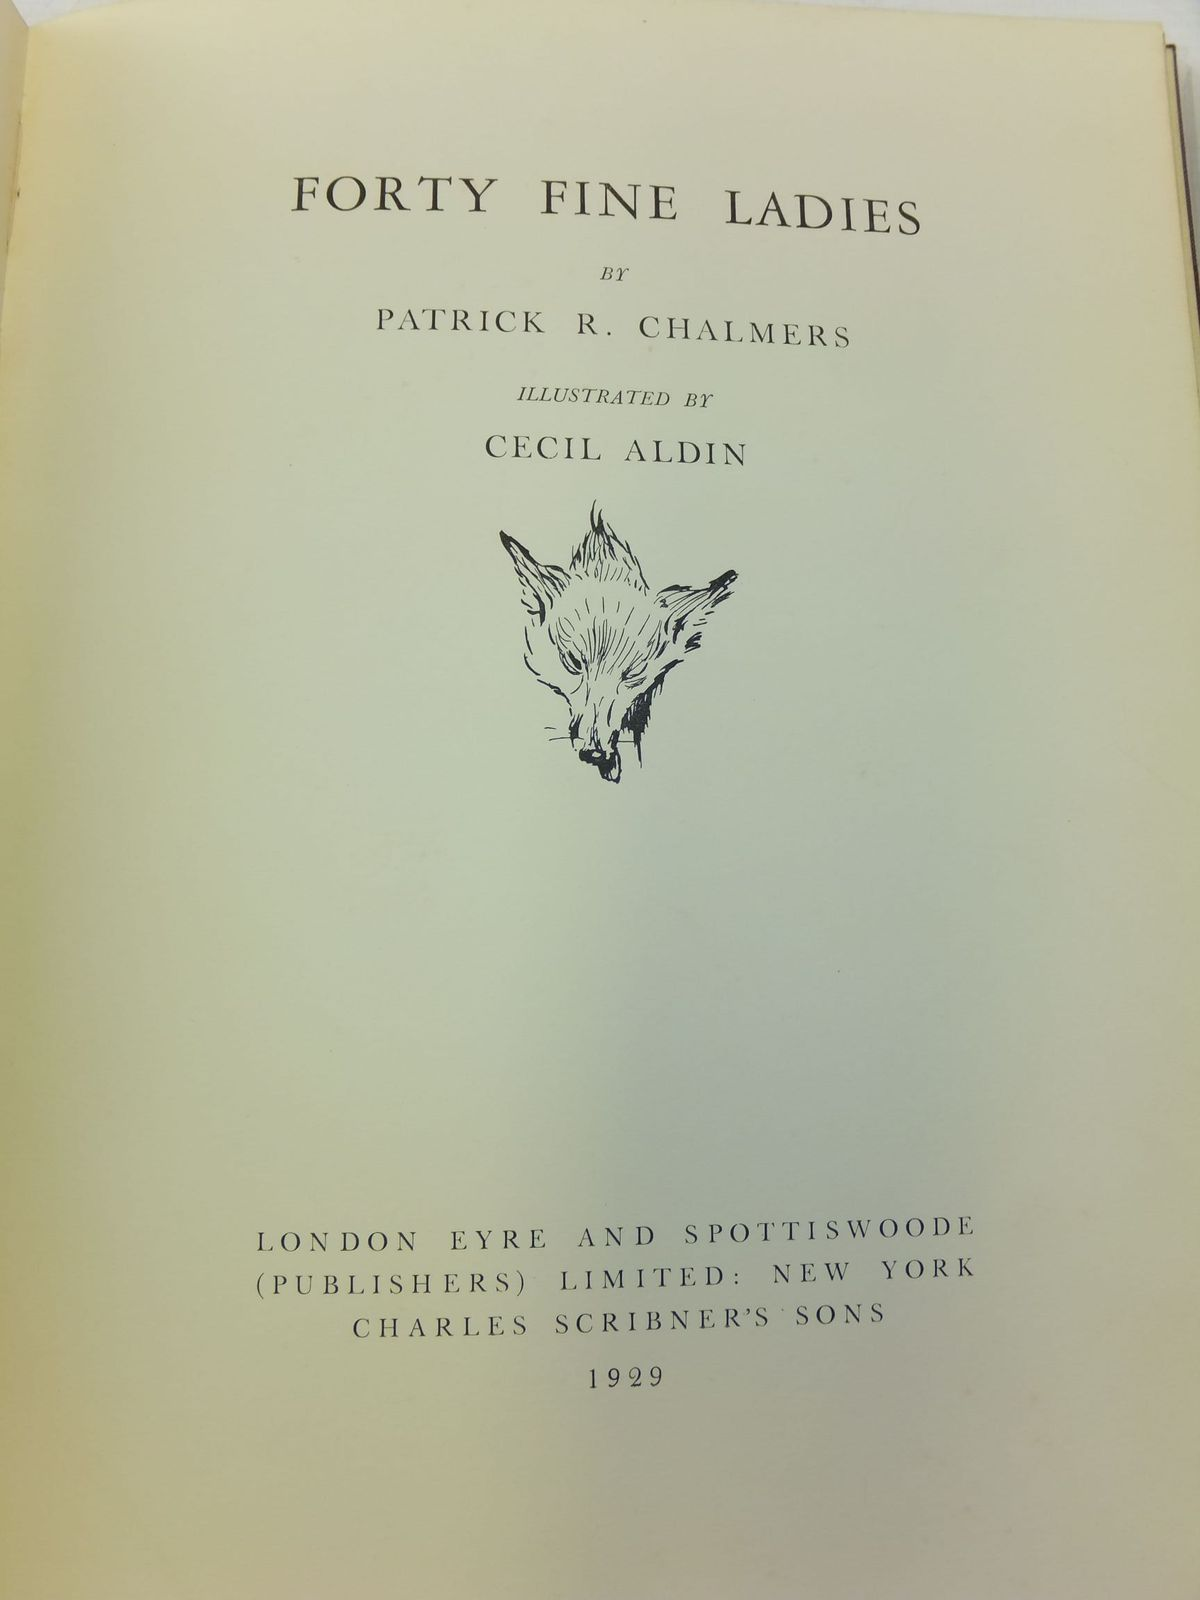 Photo of FORTY FINE LADIES written by Chalmers, Patrick R. illustrated by Aldin, Cecil published by Eyre & Spottiswoode (STOCK CODE: 1109160)  for sale by Stella & Rose's Books